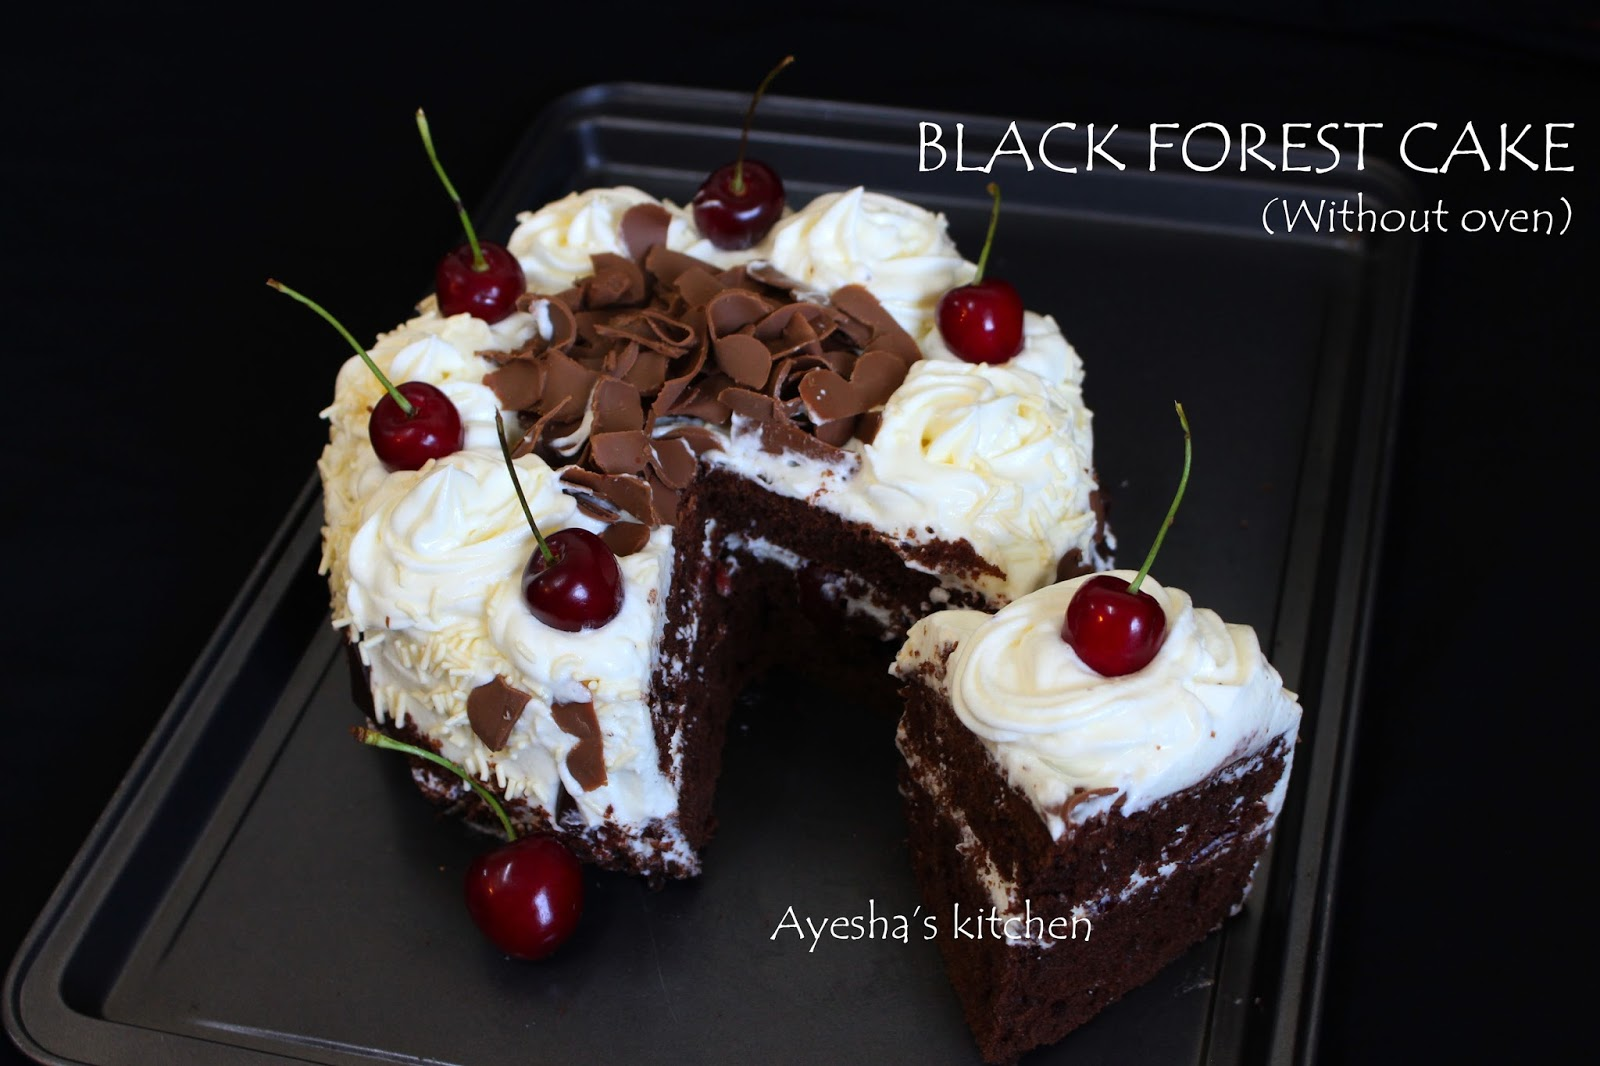 How to make black forest cake Black forest cake recipe without oven